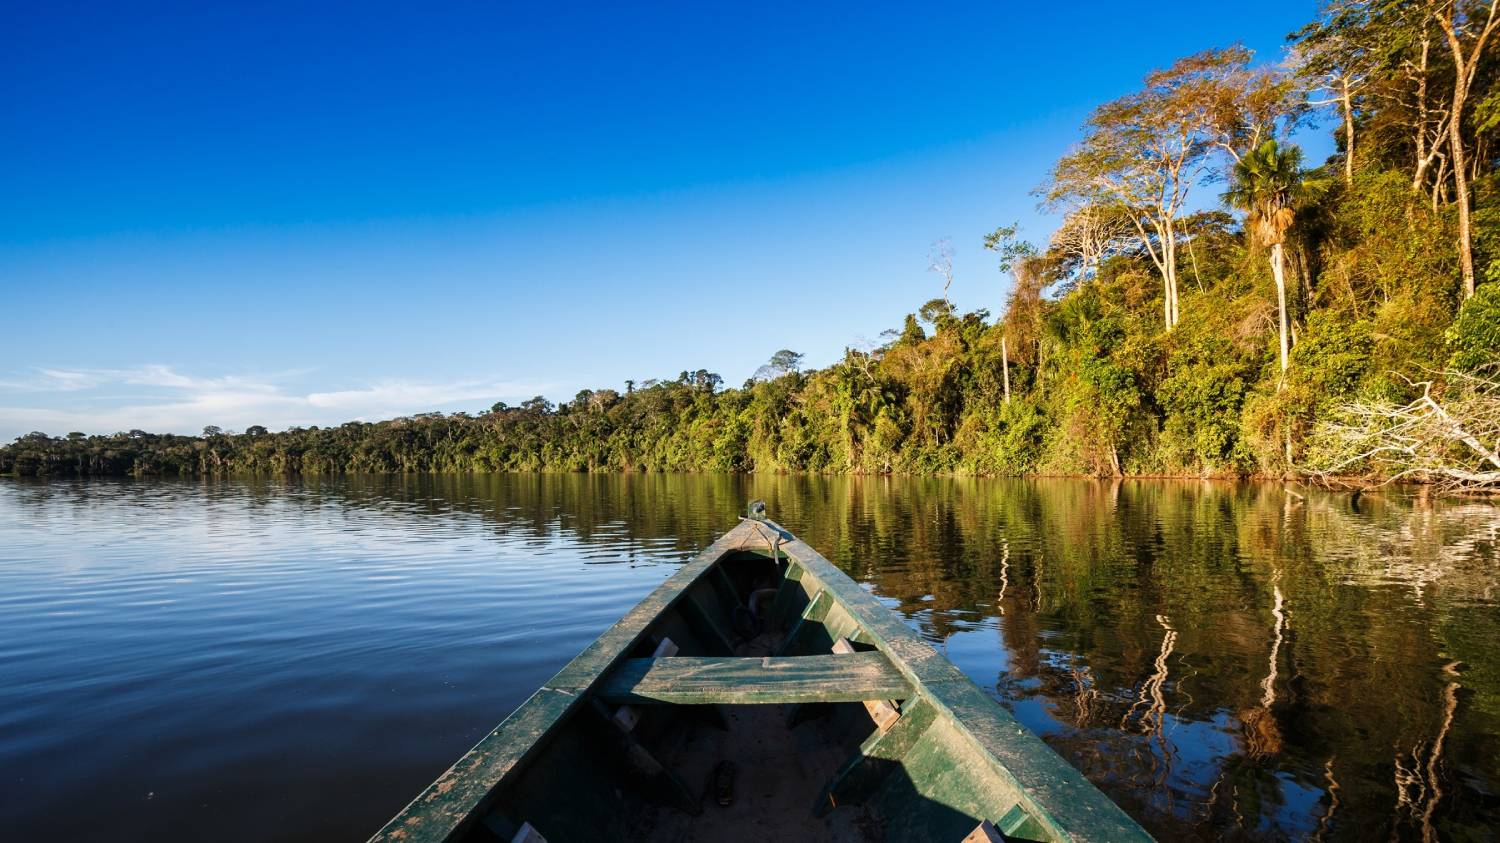 Manaus - The Best Places To Visit In Brazil